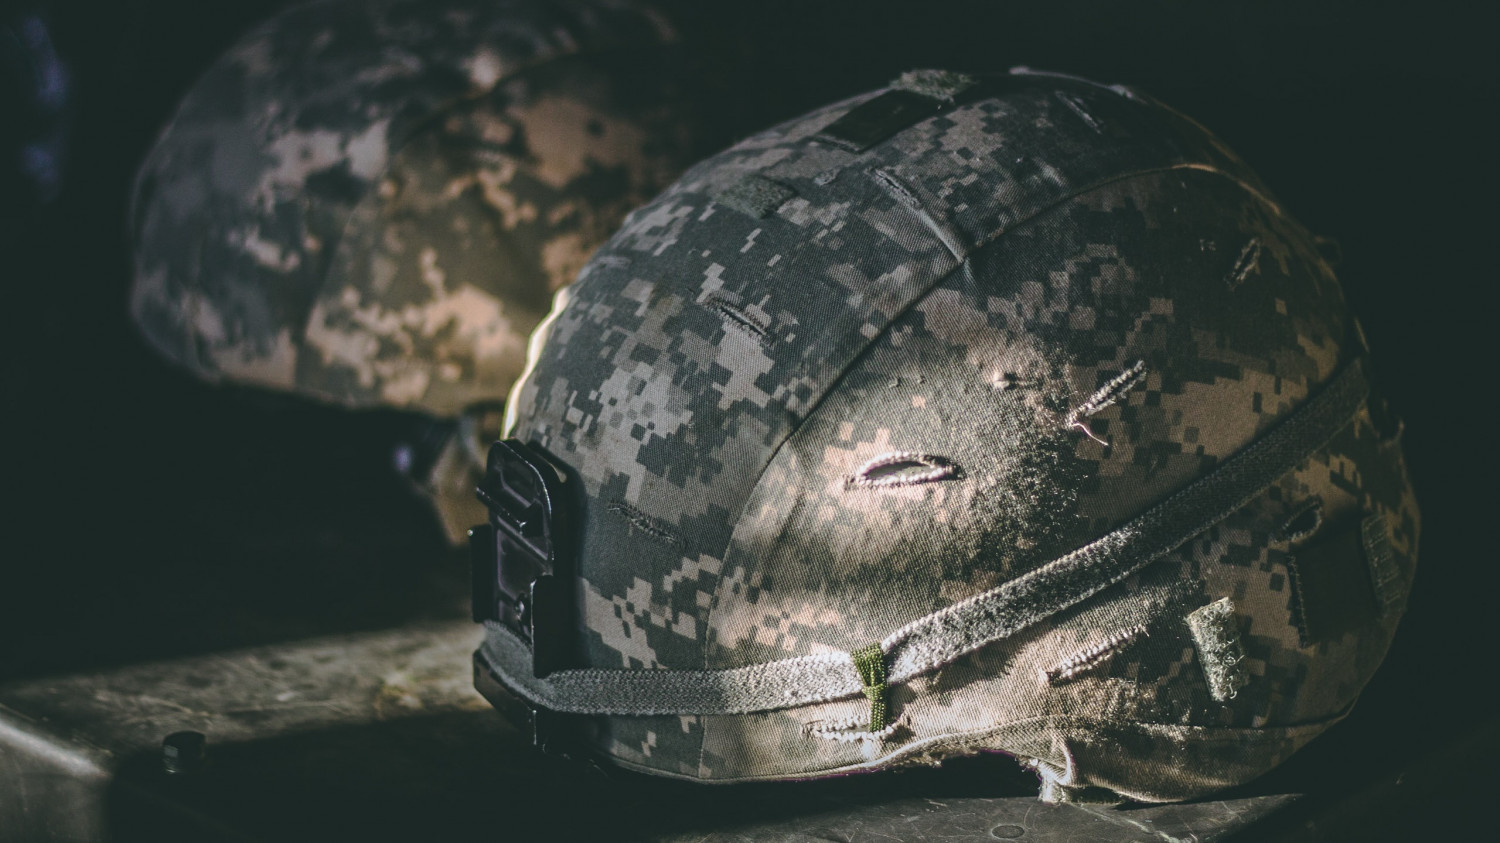 Image of a soldiers helmet on a camp bed